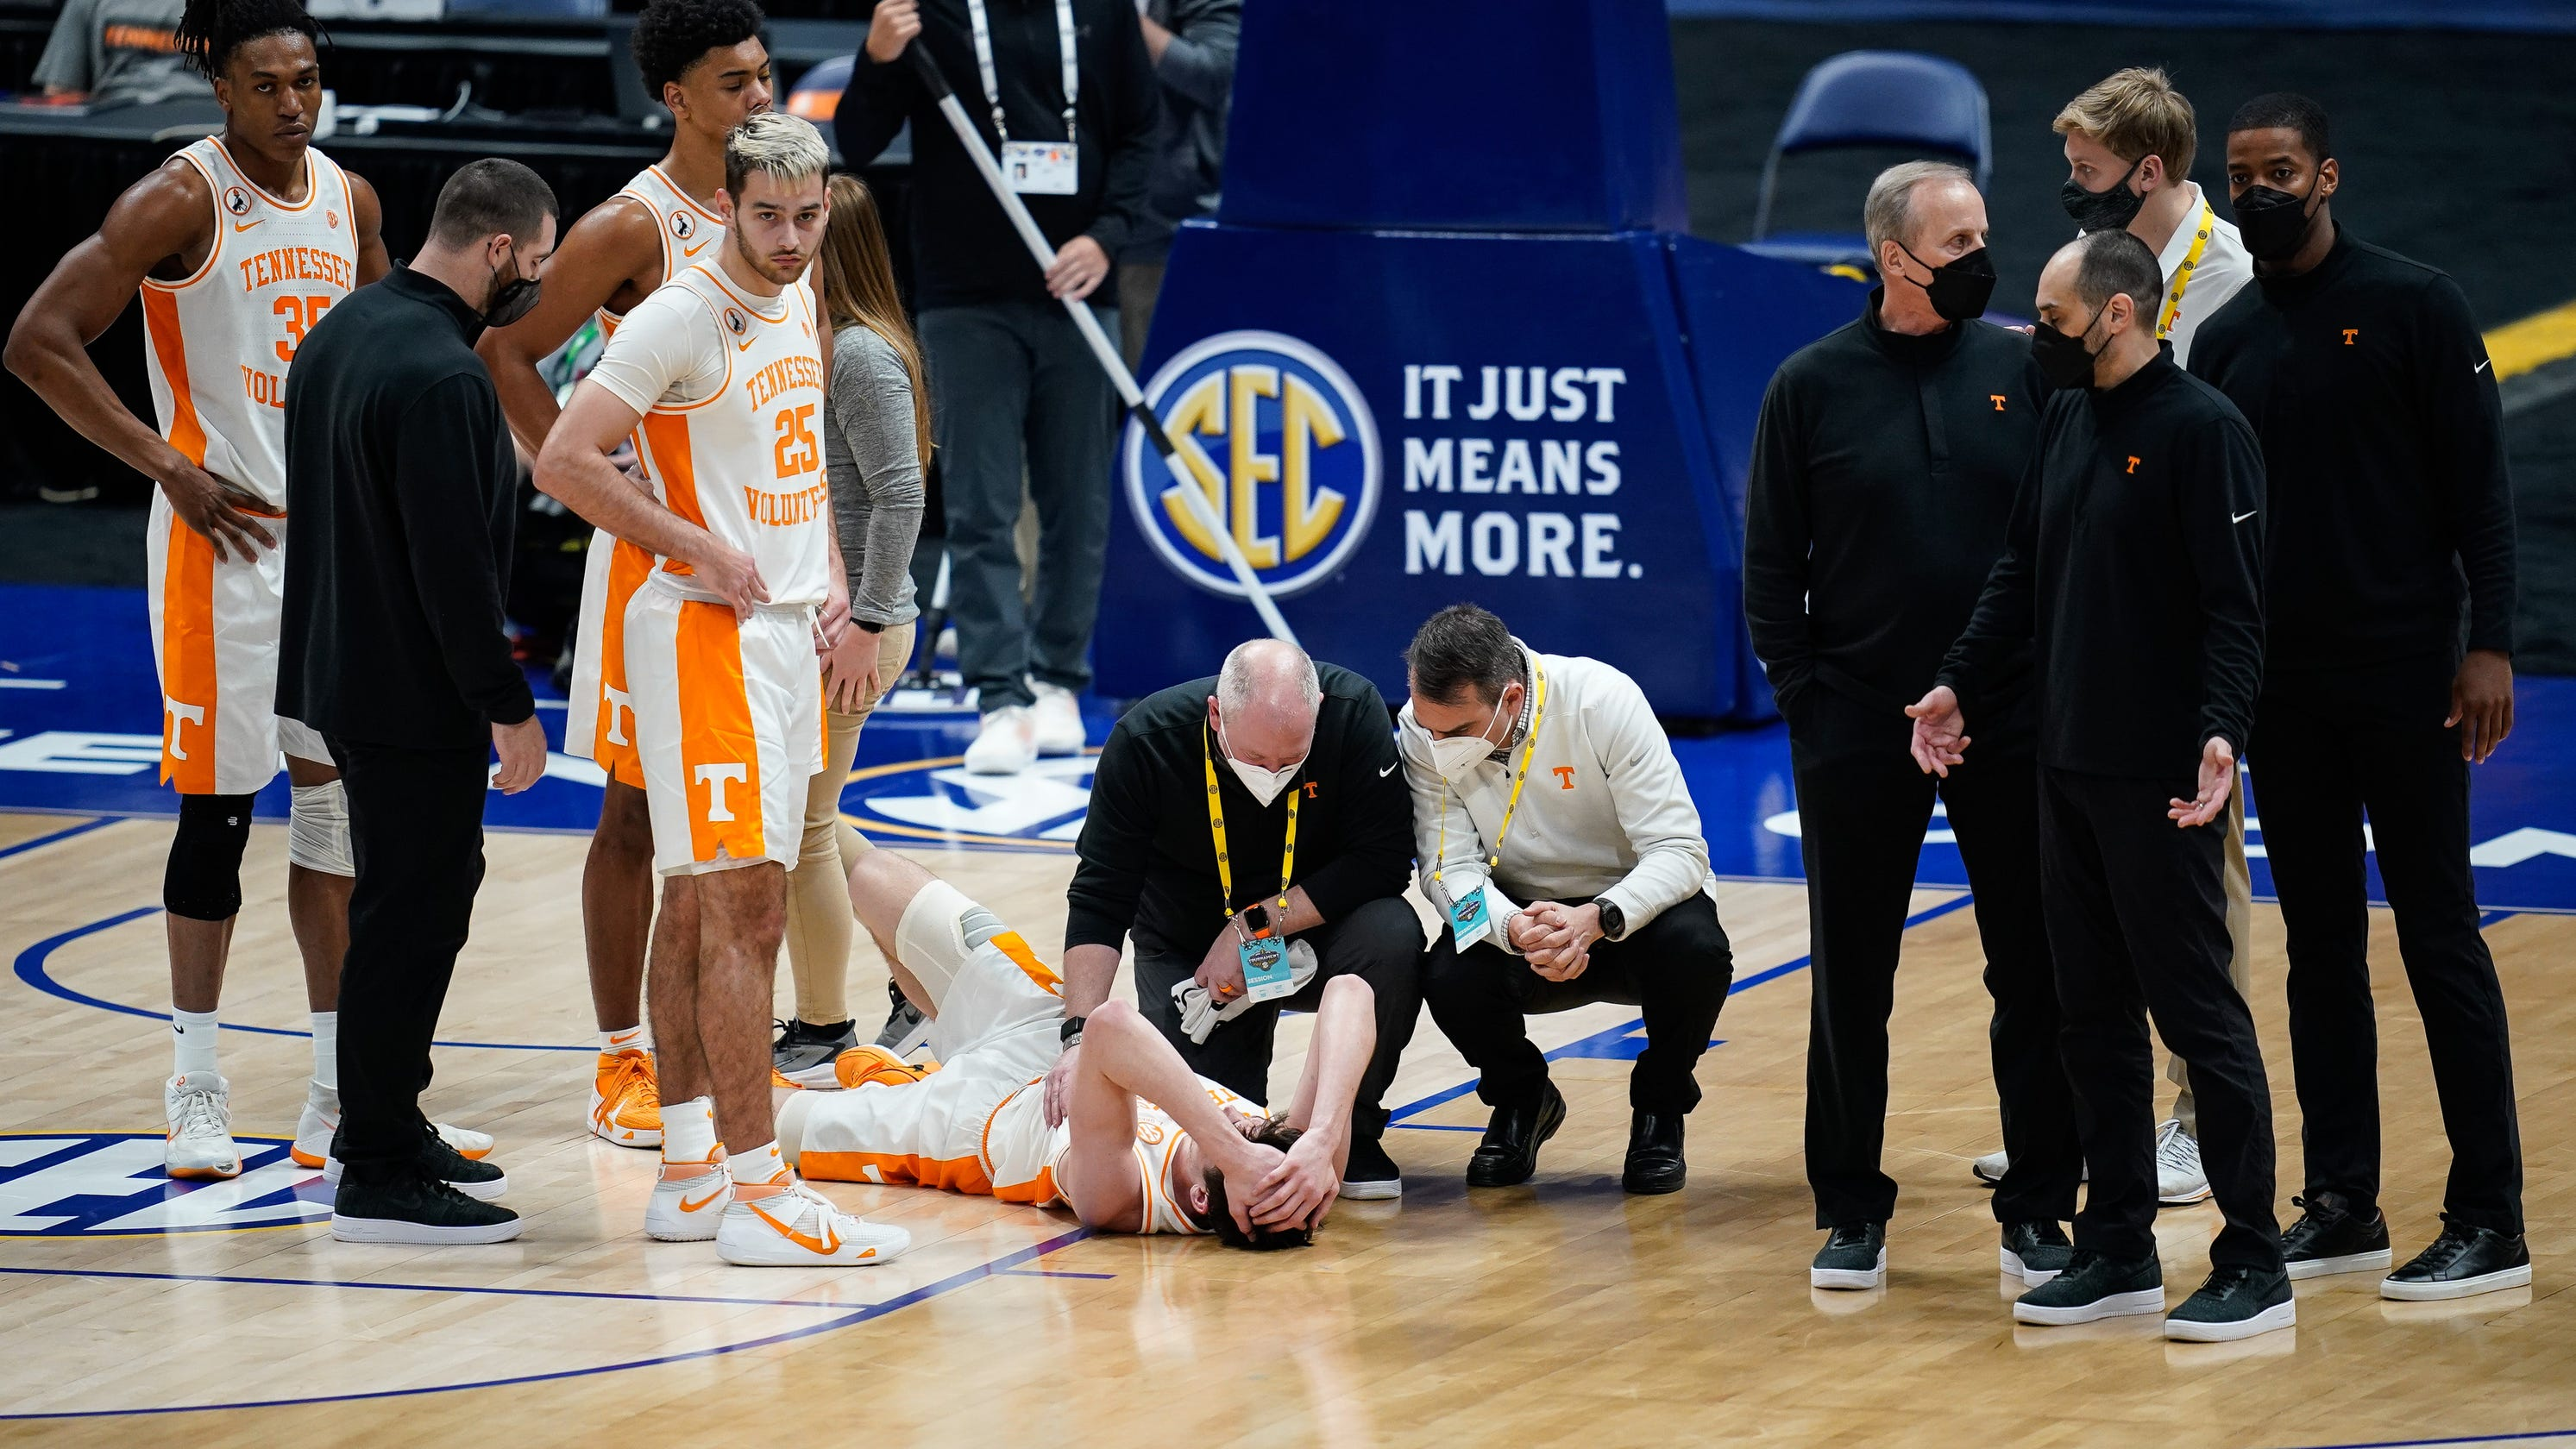 John Fulkerson doubtful to play for Tennessee basketball vs. Alabama after 'dirty play' - Knoxville News Sentinel